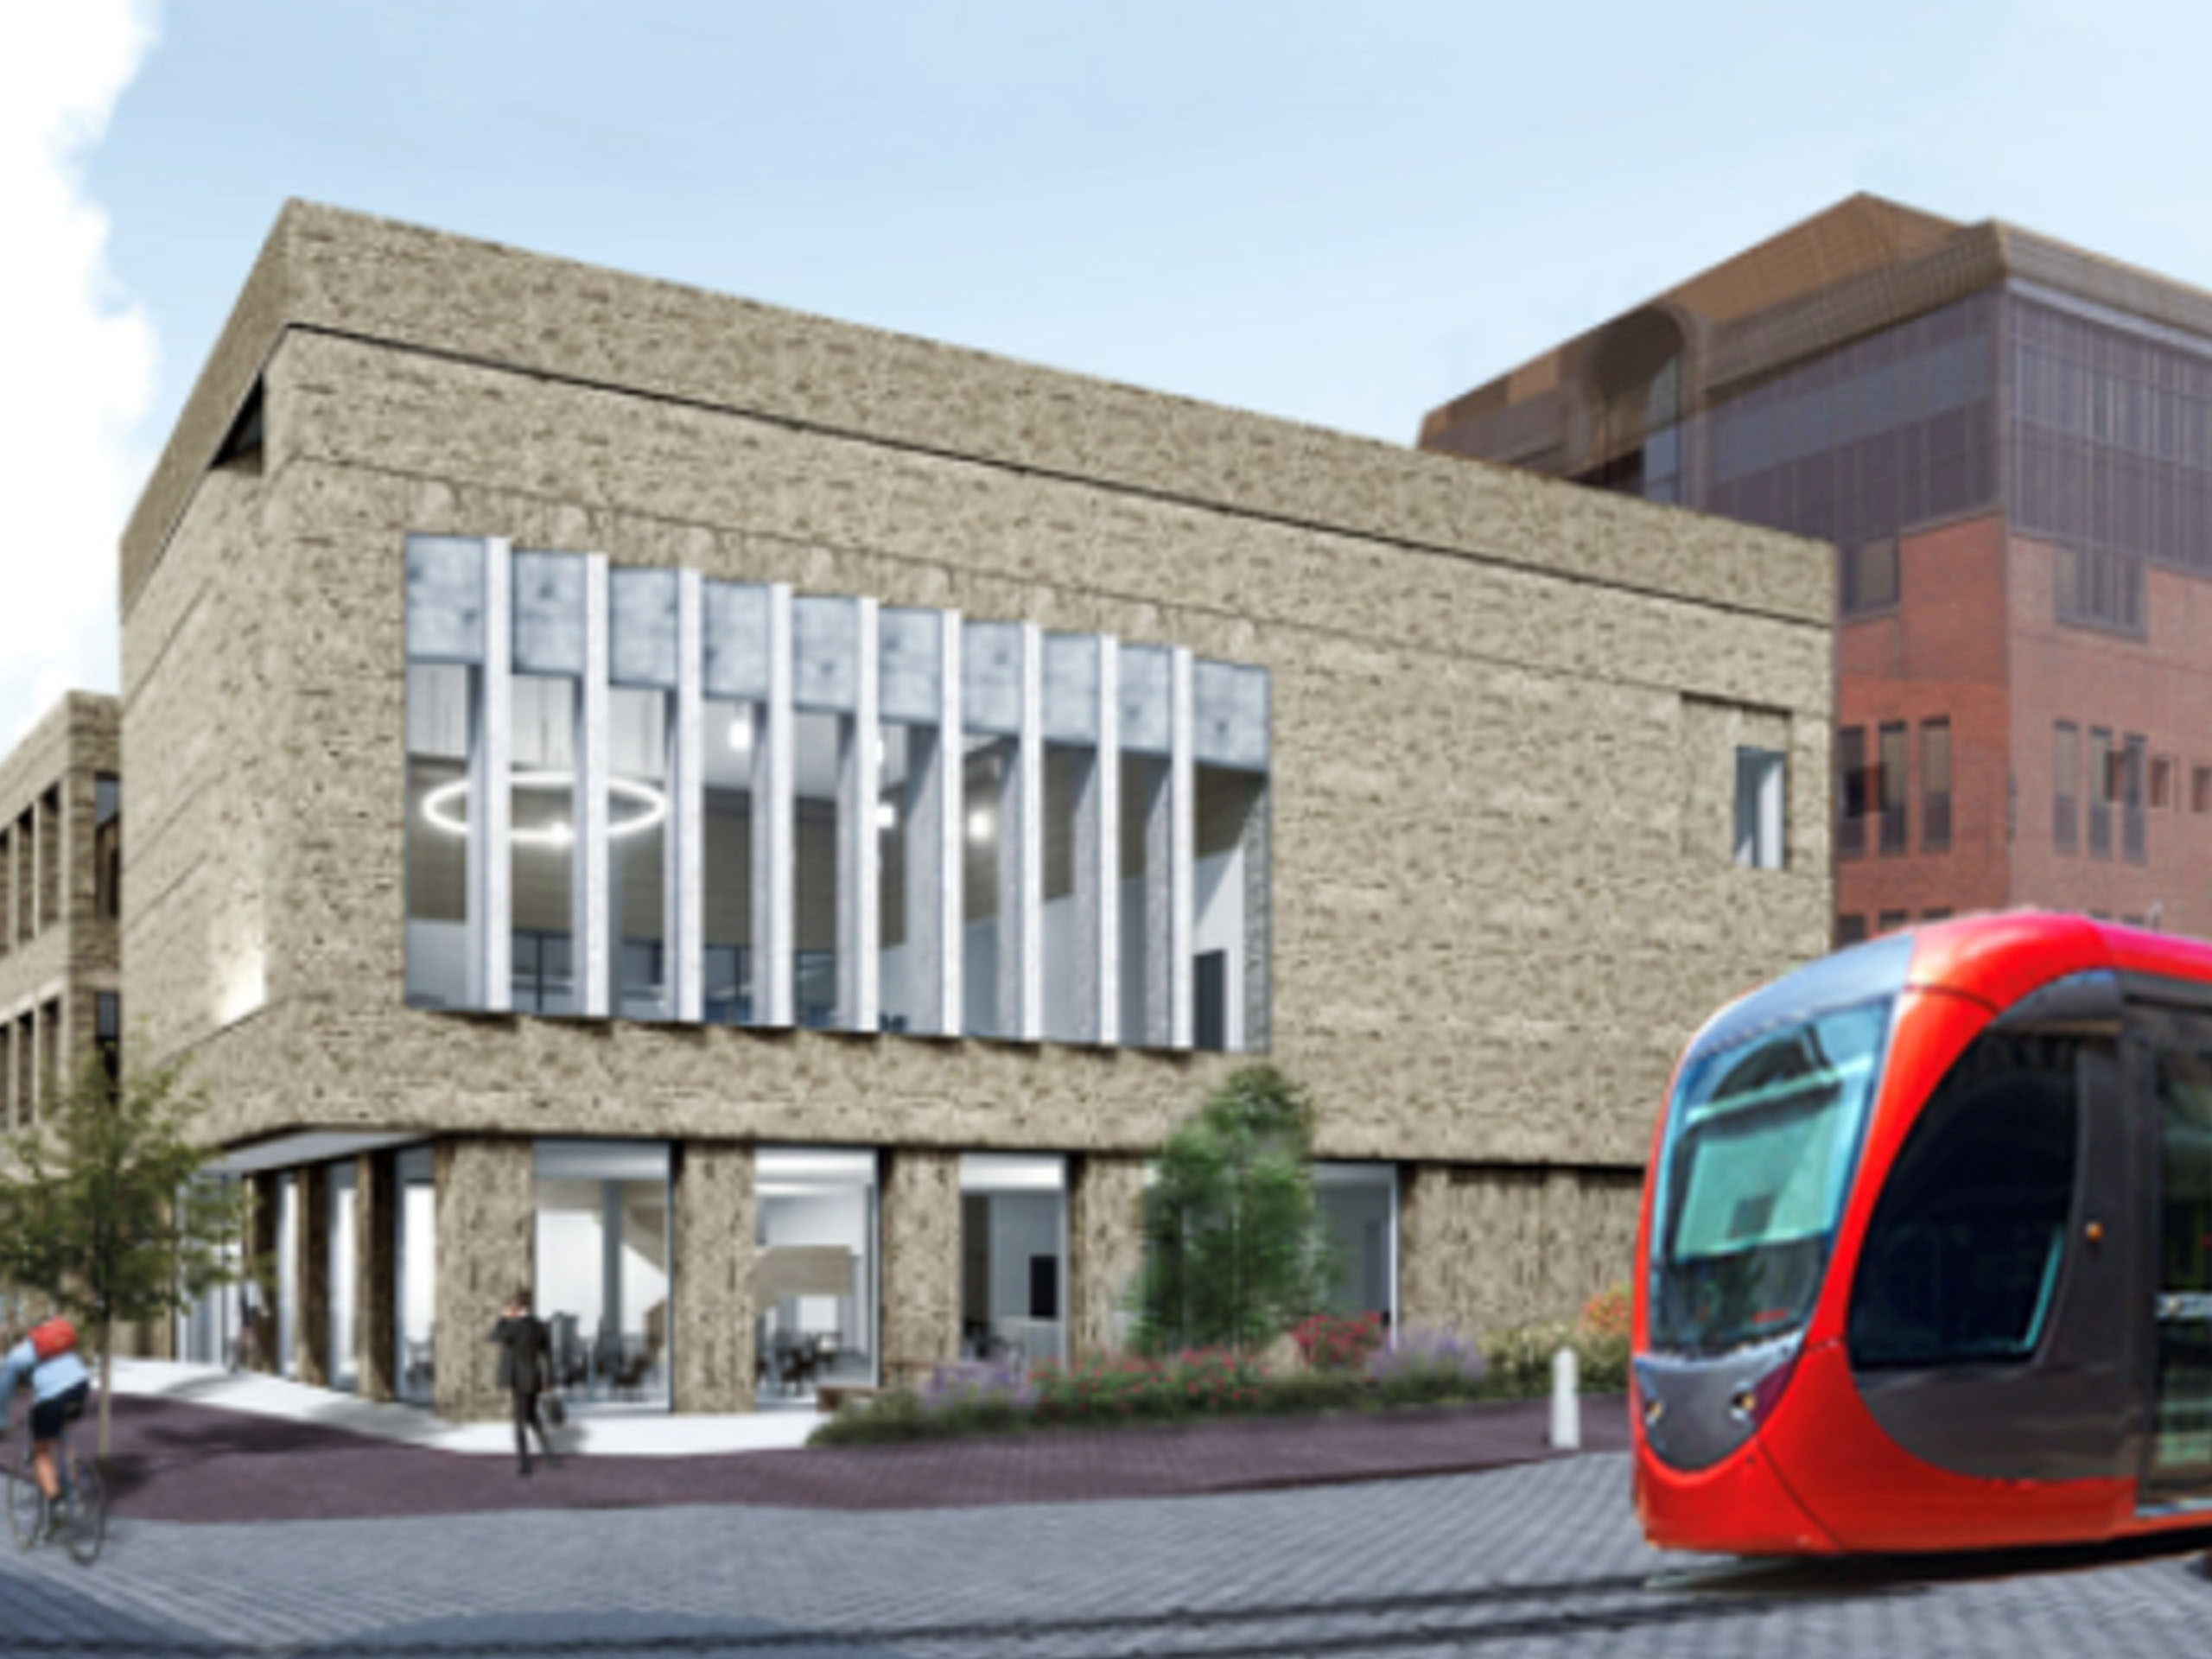 The core tram proposal